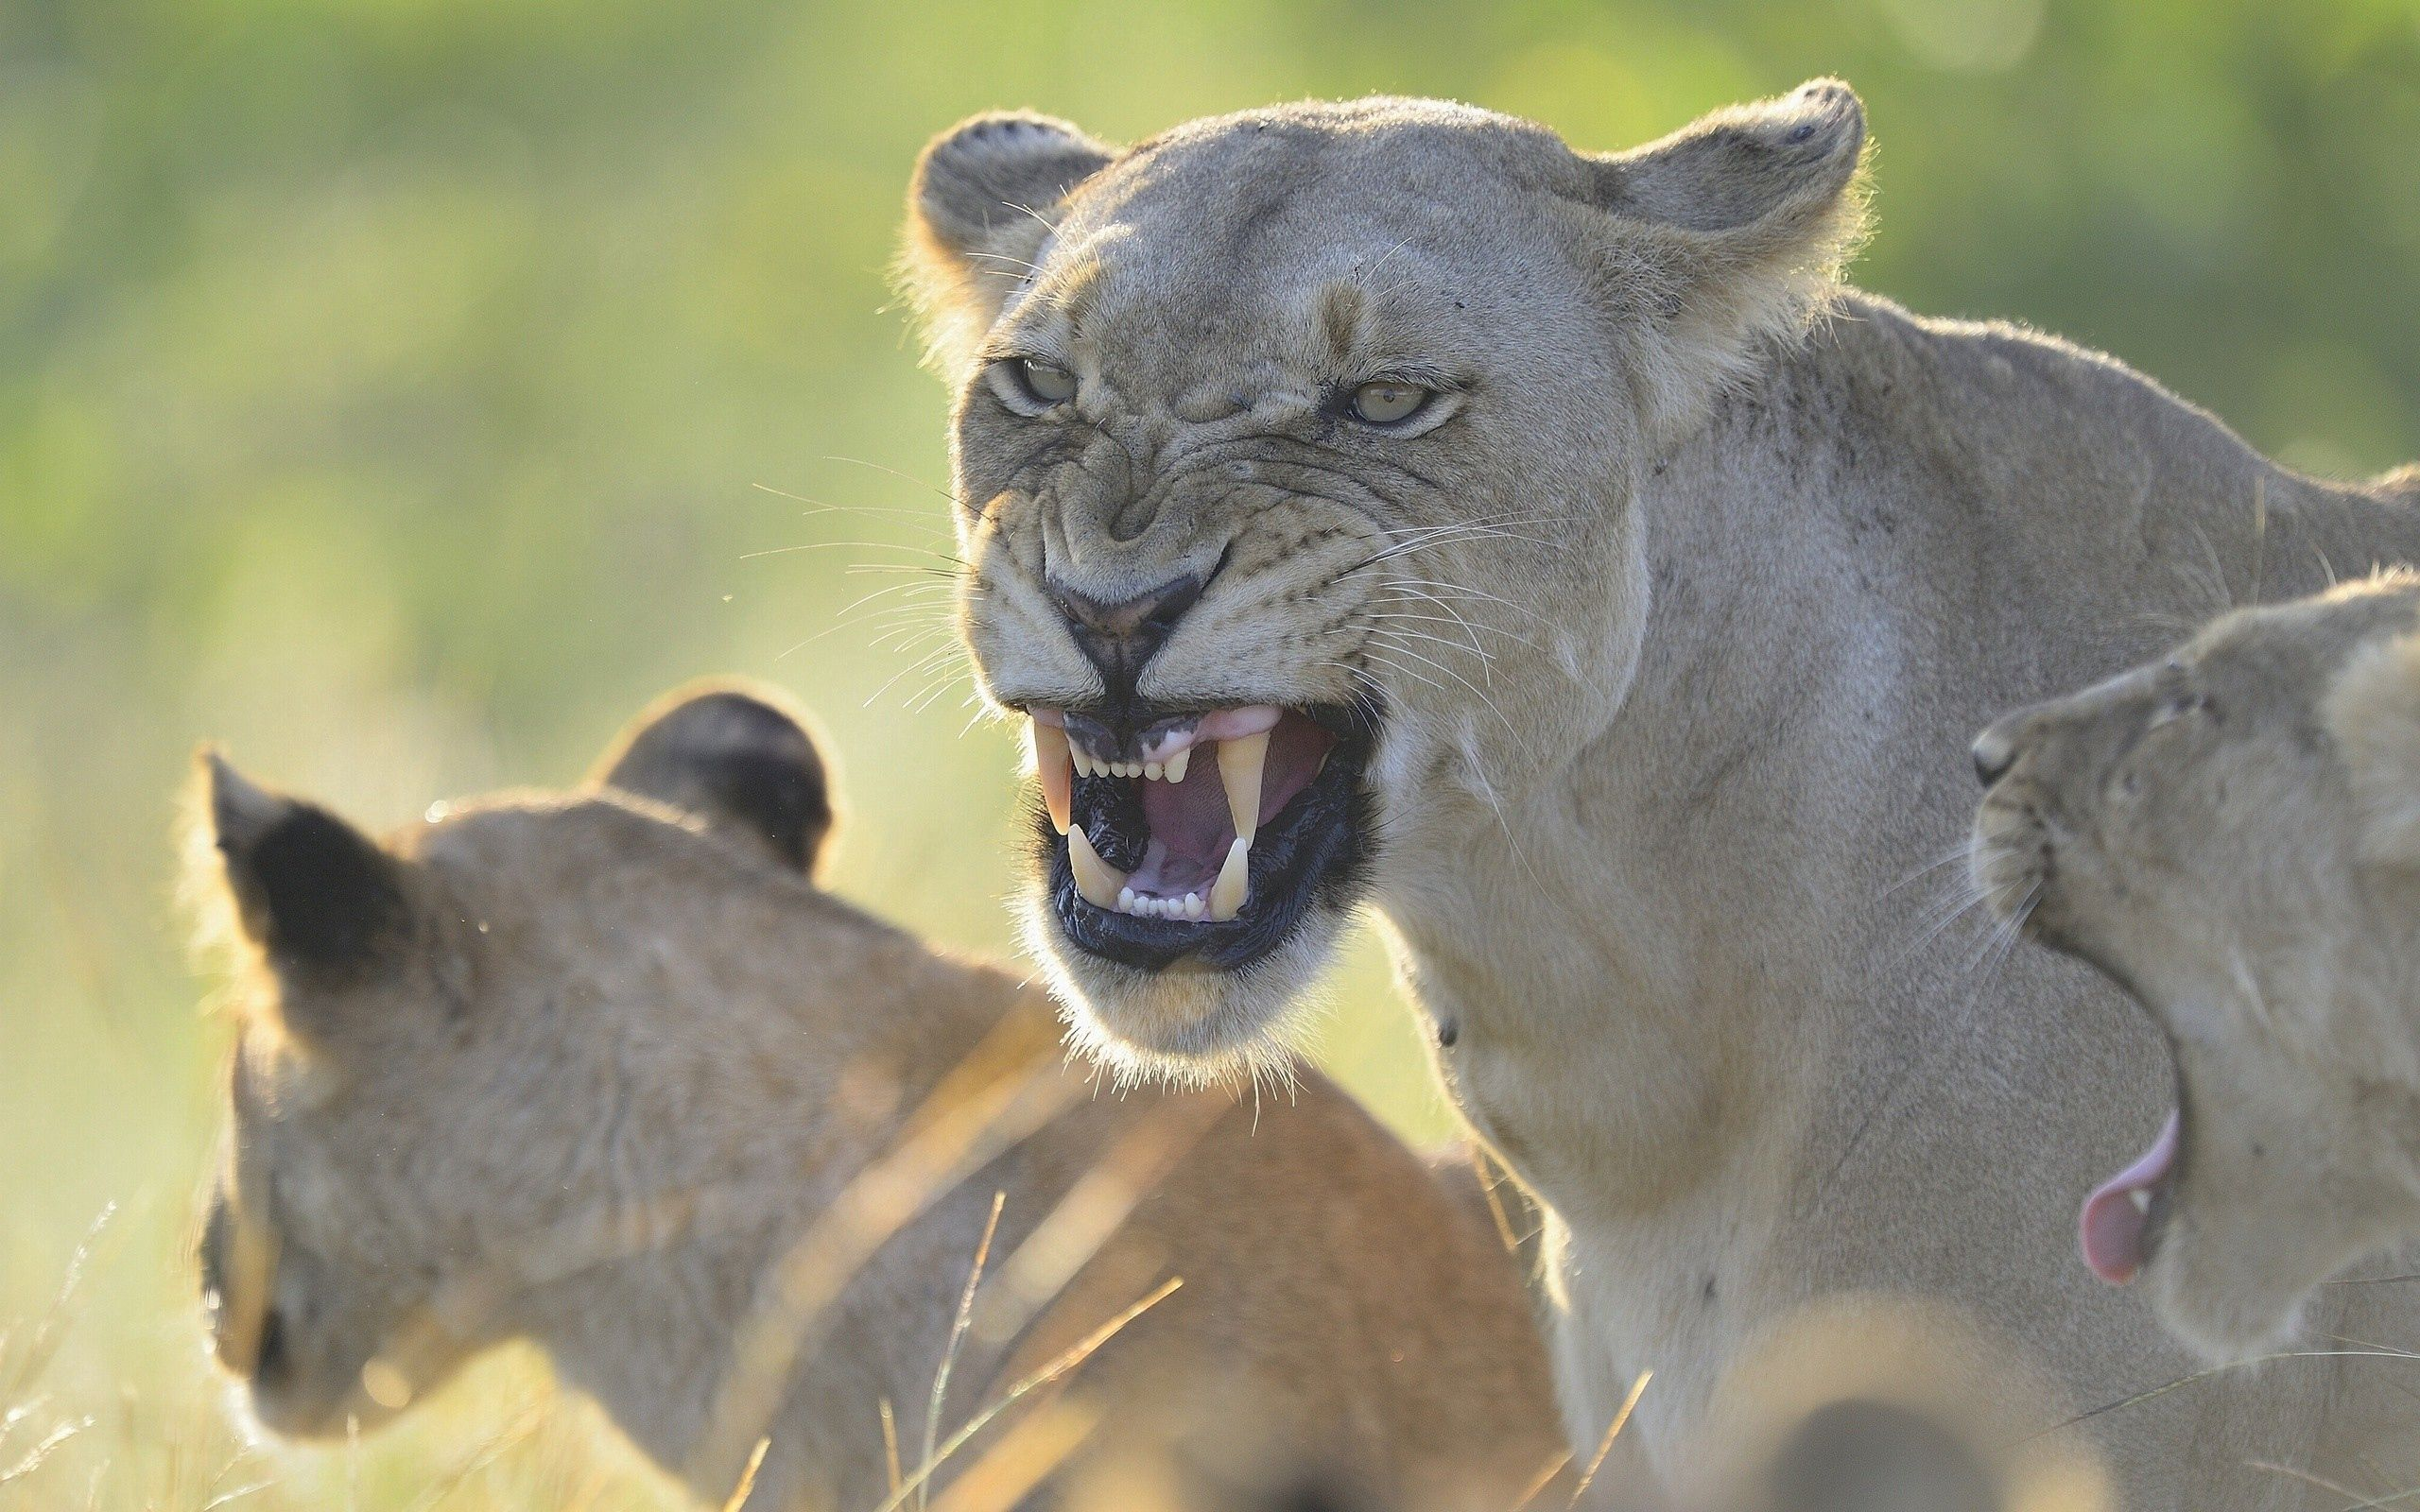 96706 download wallpaper Animals, Aggression, Grin, Lion, Predator, Lioness, Anger screensavers and pictures for free